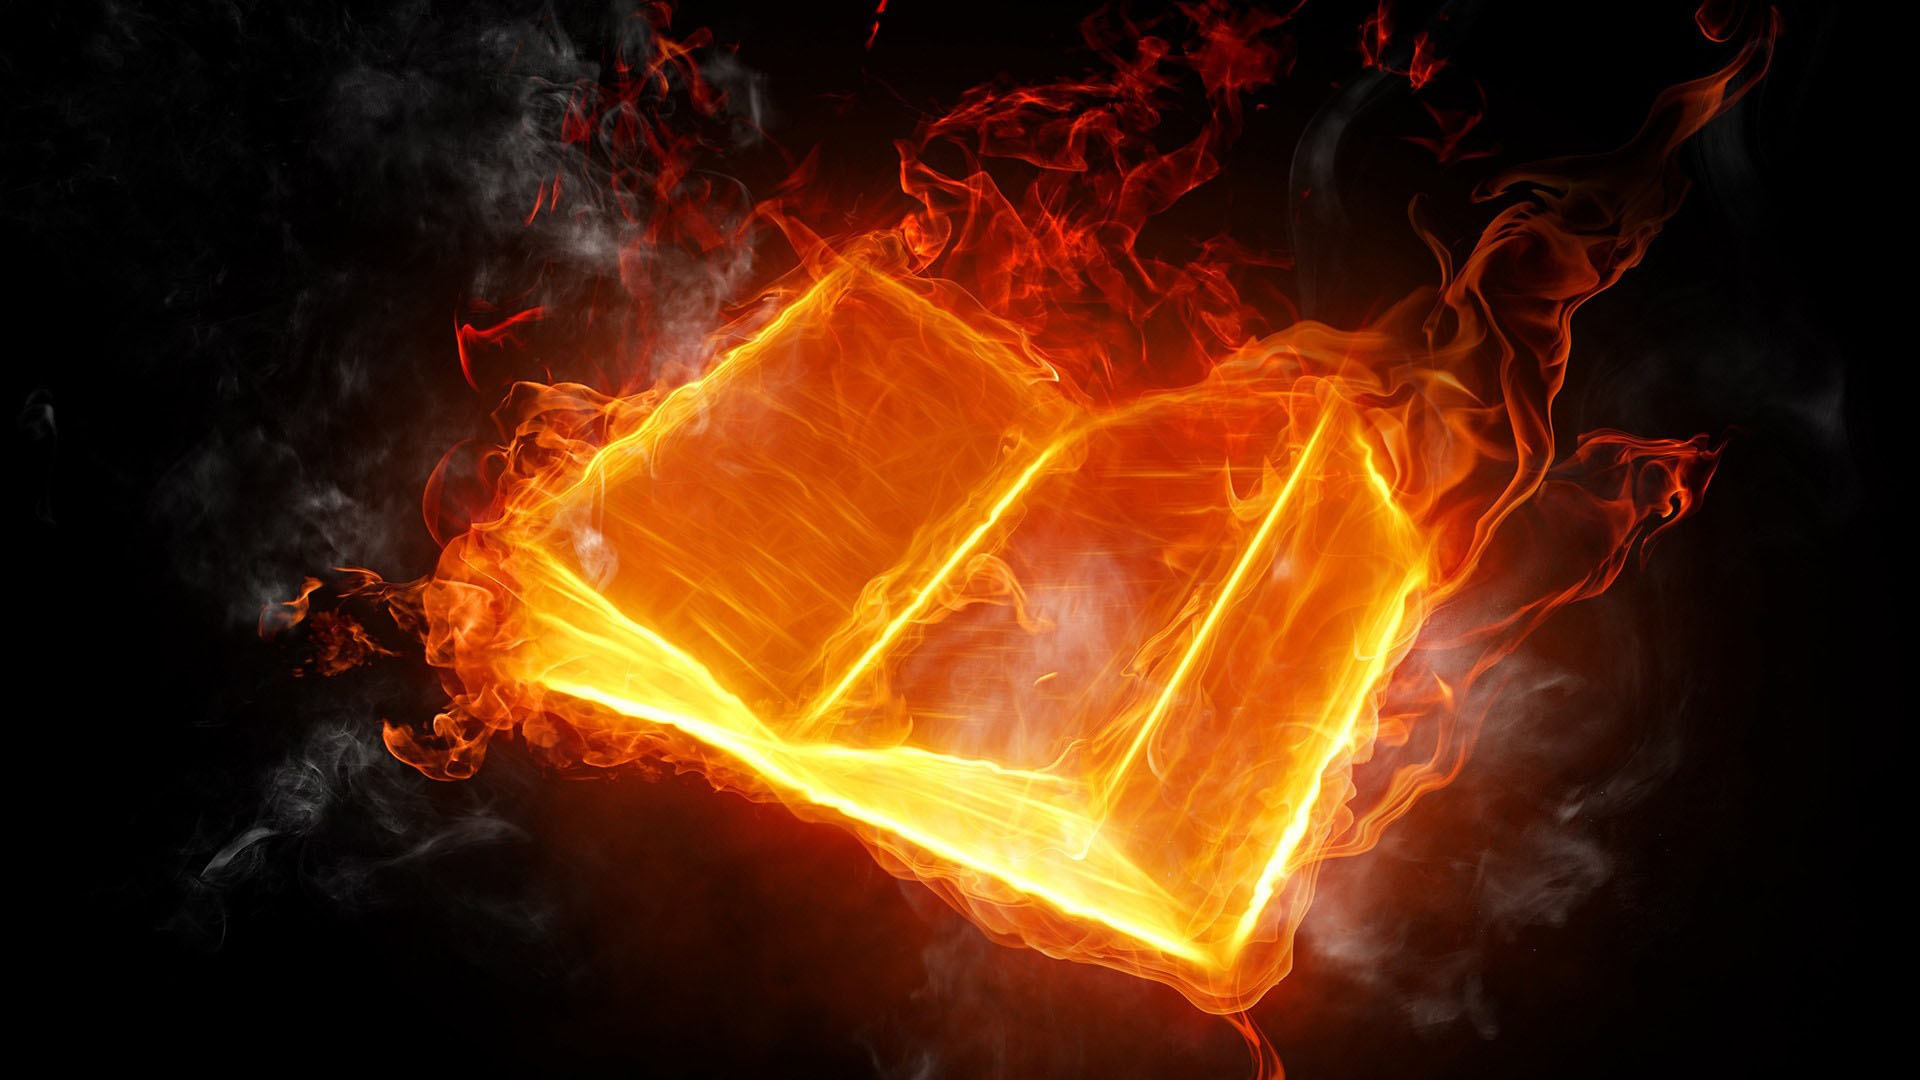 3D Fire Book Image - 3D HD